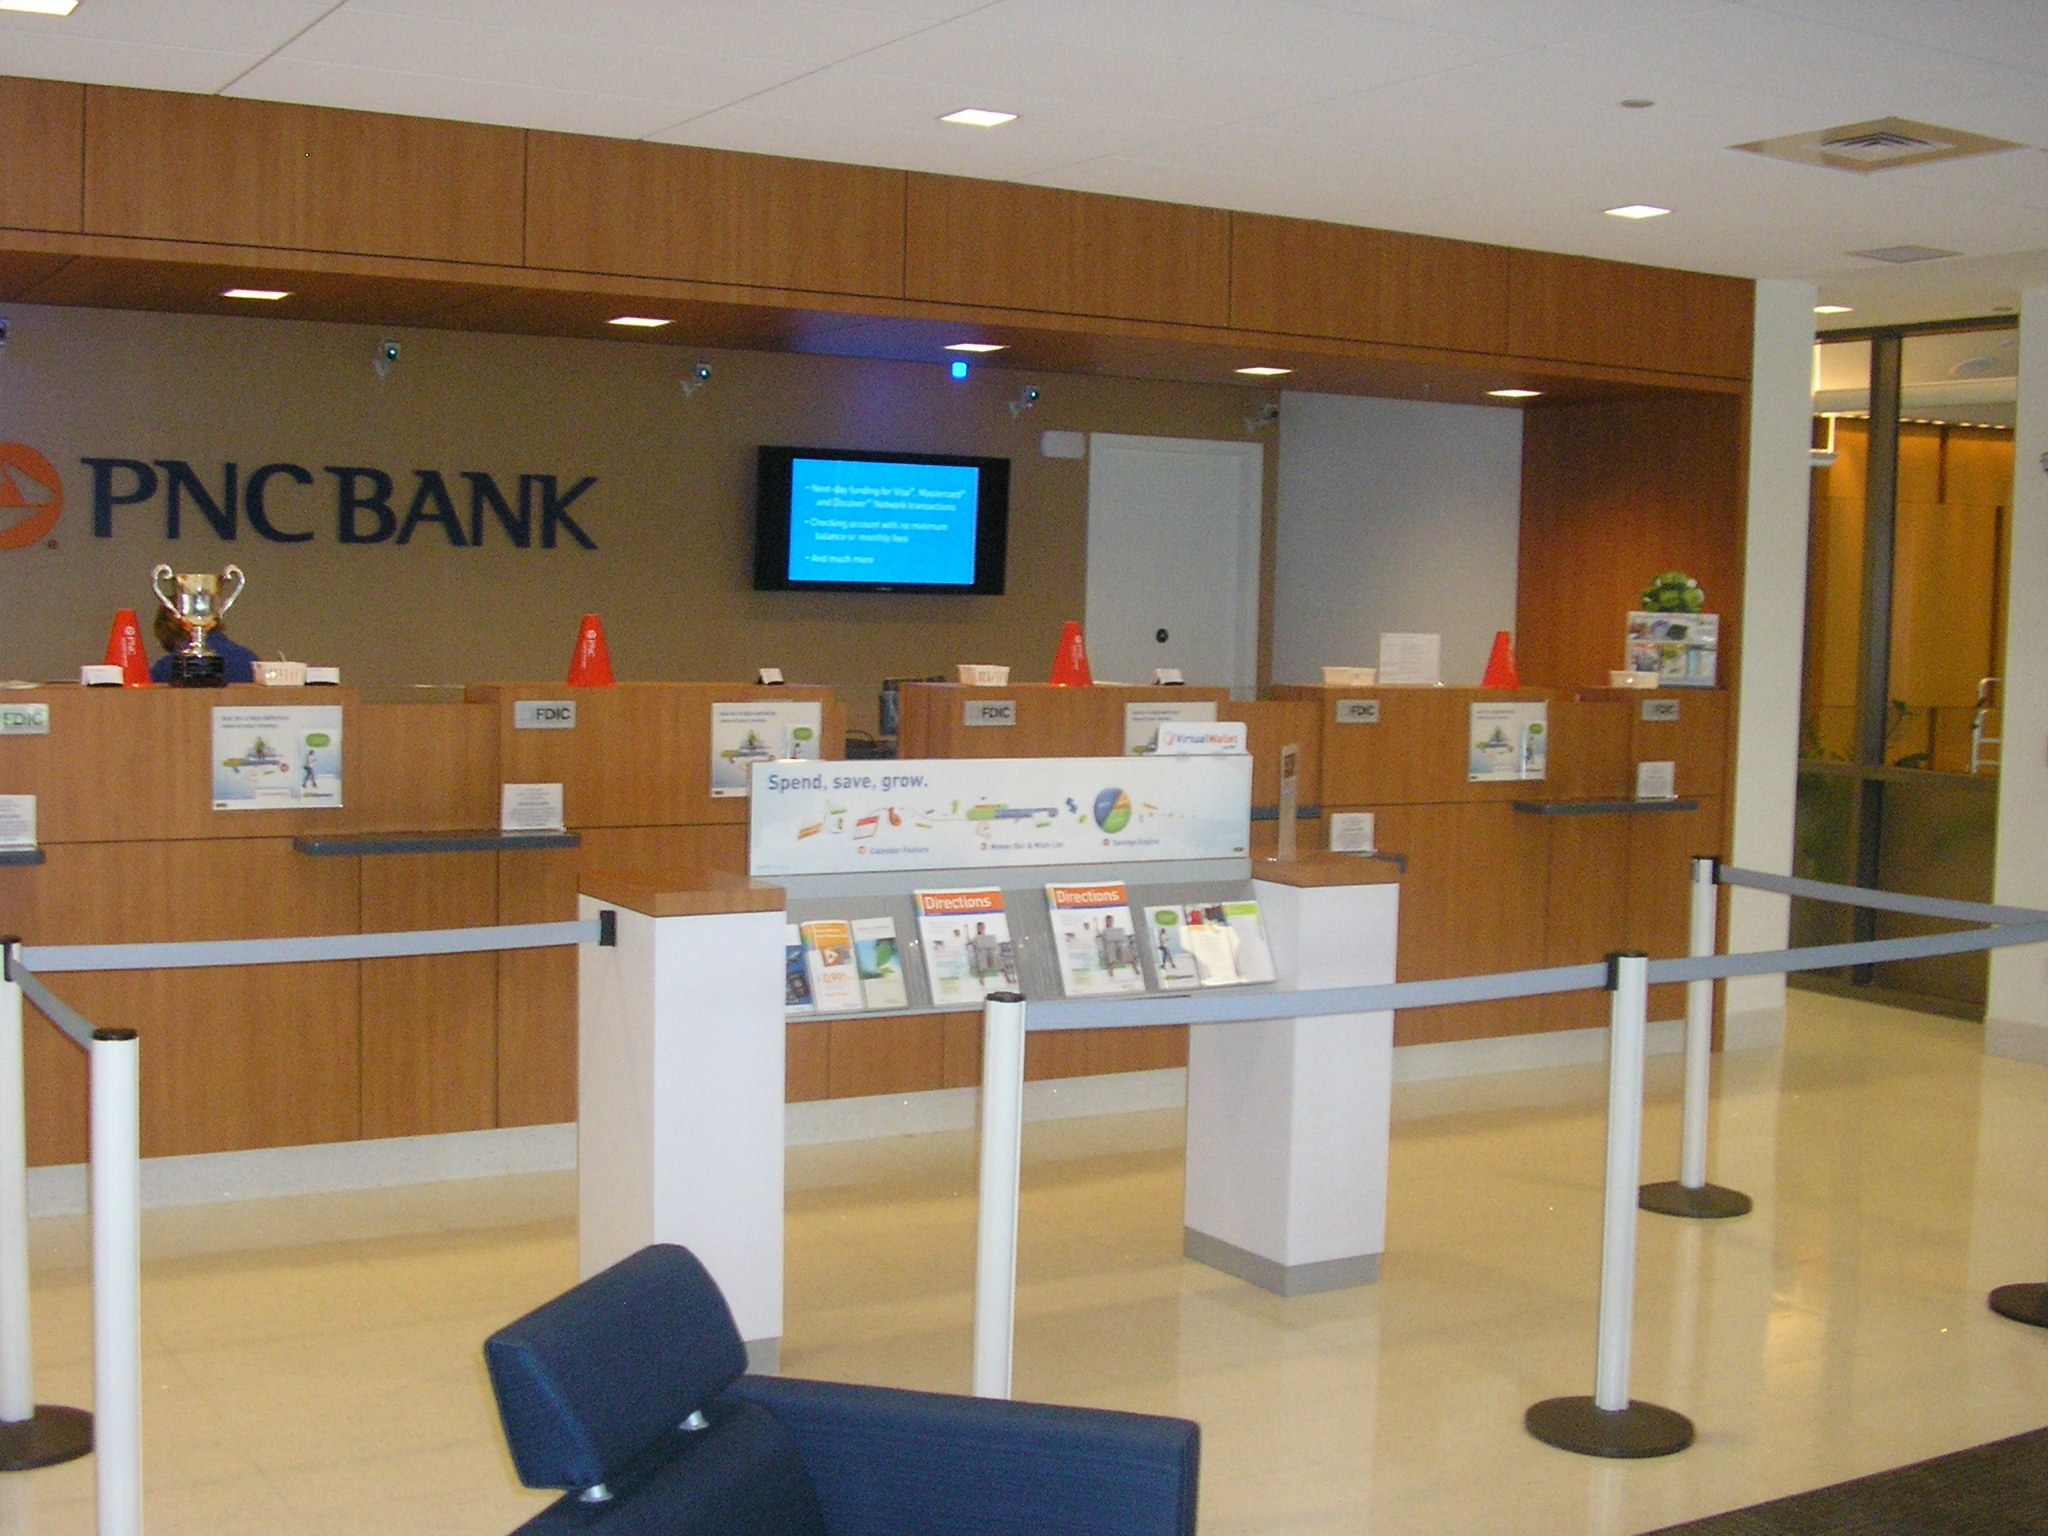 bank and office interiors. SF Office PNC Bank\u0027s Navy Yard Branch In Philadelphia Recently Received LEED-CI Gold Certification From The United States Green Building Council. Bank And Interiors I